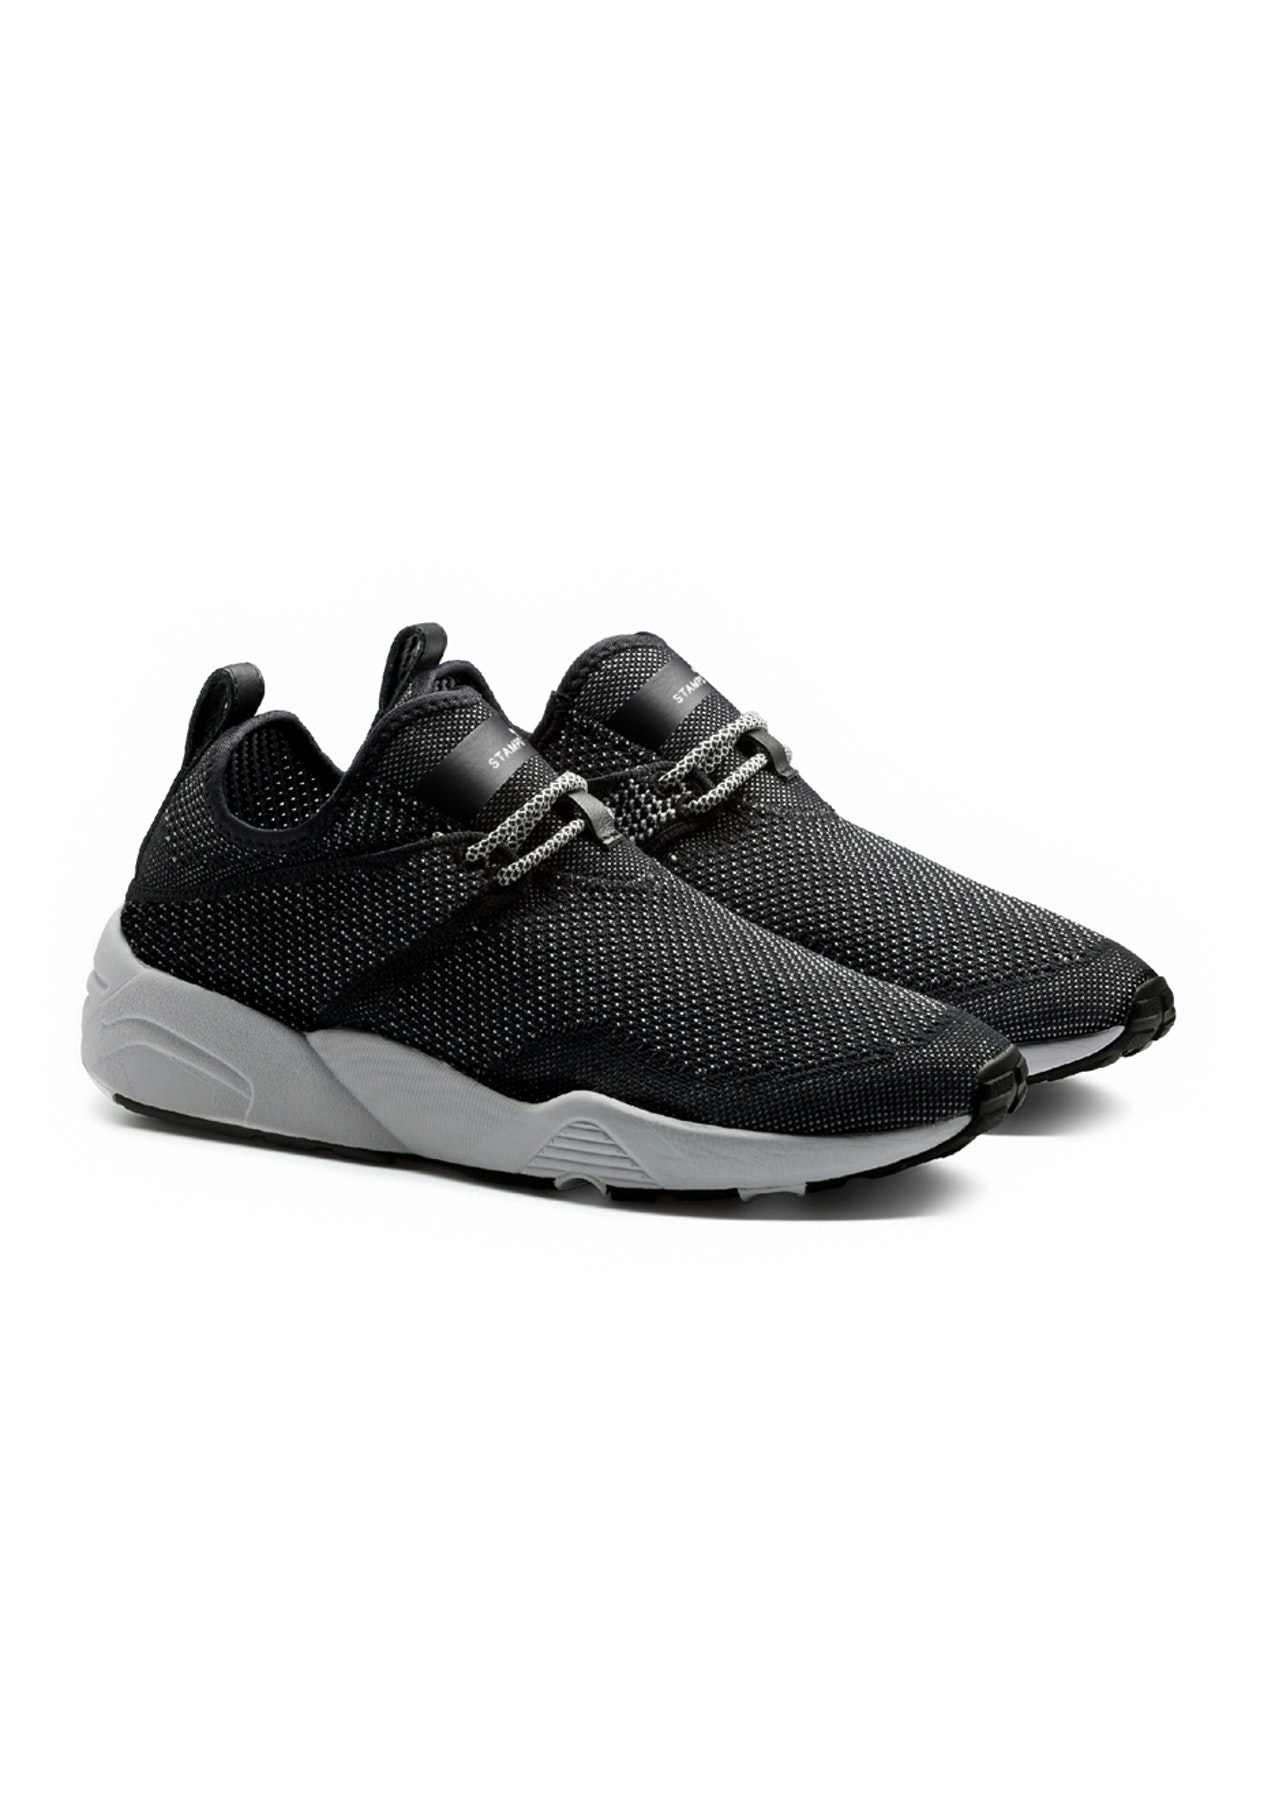 9f41b4a29 Puma Mens - Puma X Stampd Trinomic Woven - Black - Mens Mixed Brand Sale -  Onceit